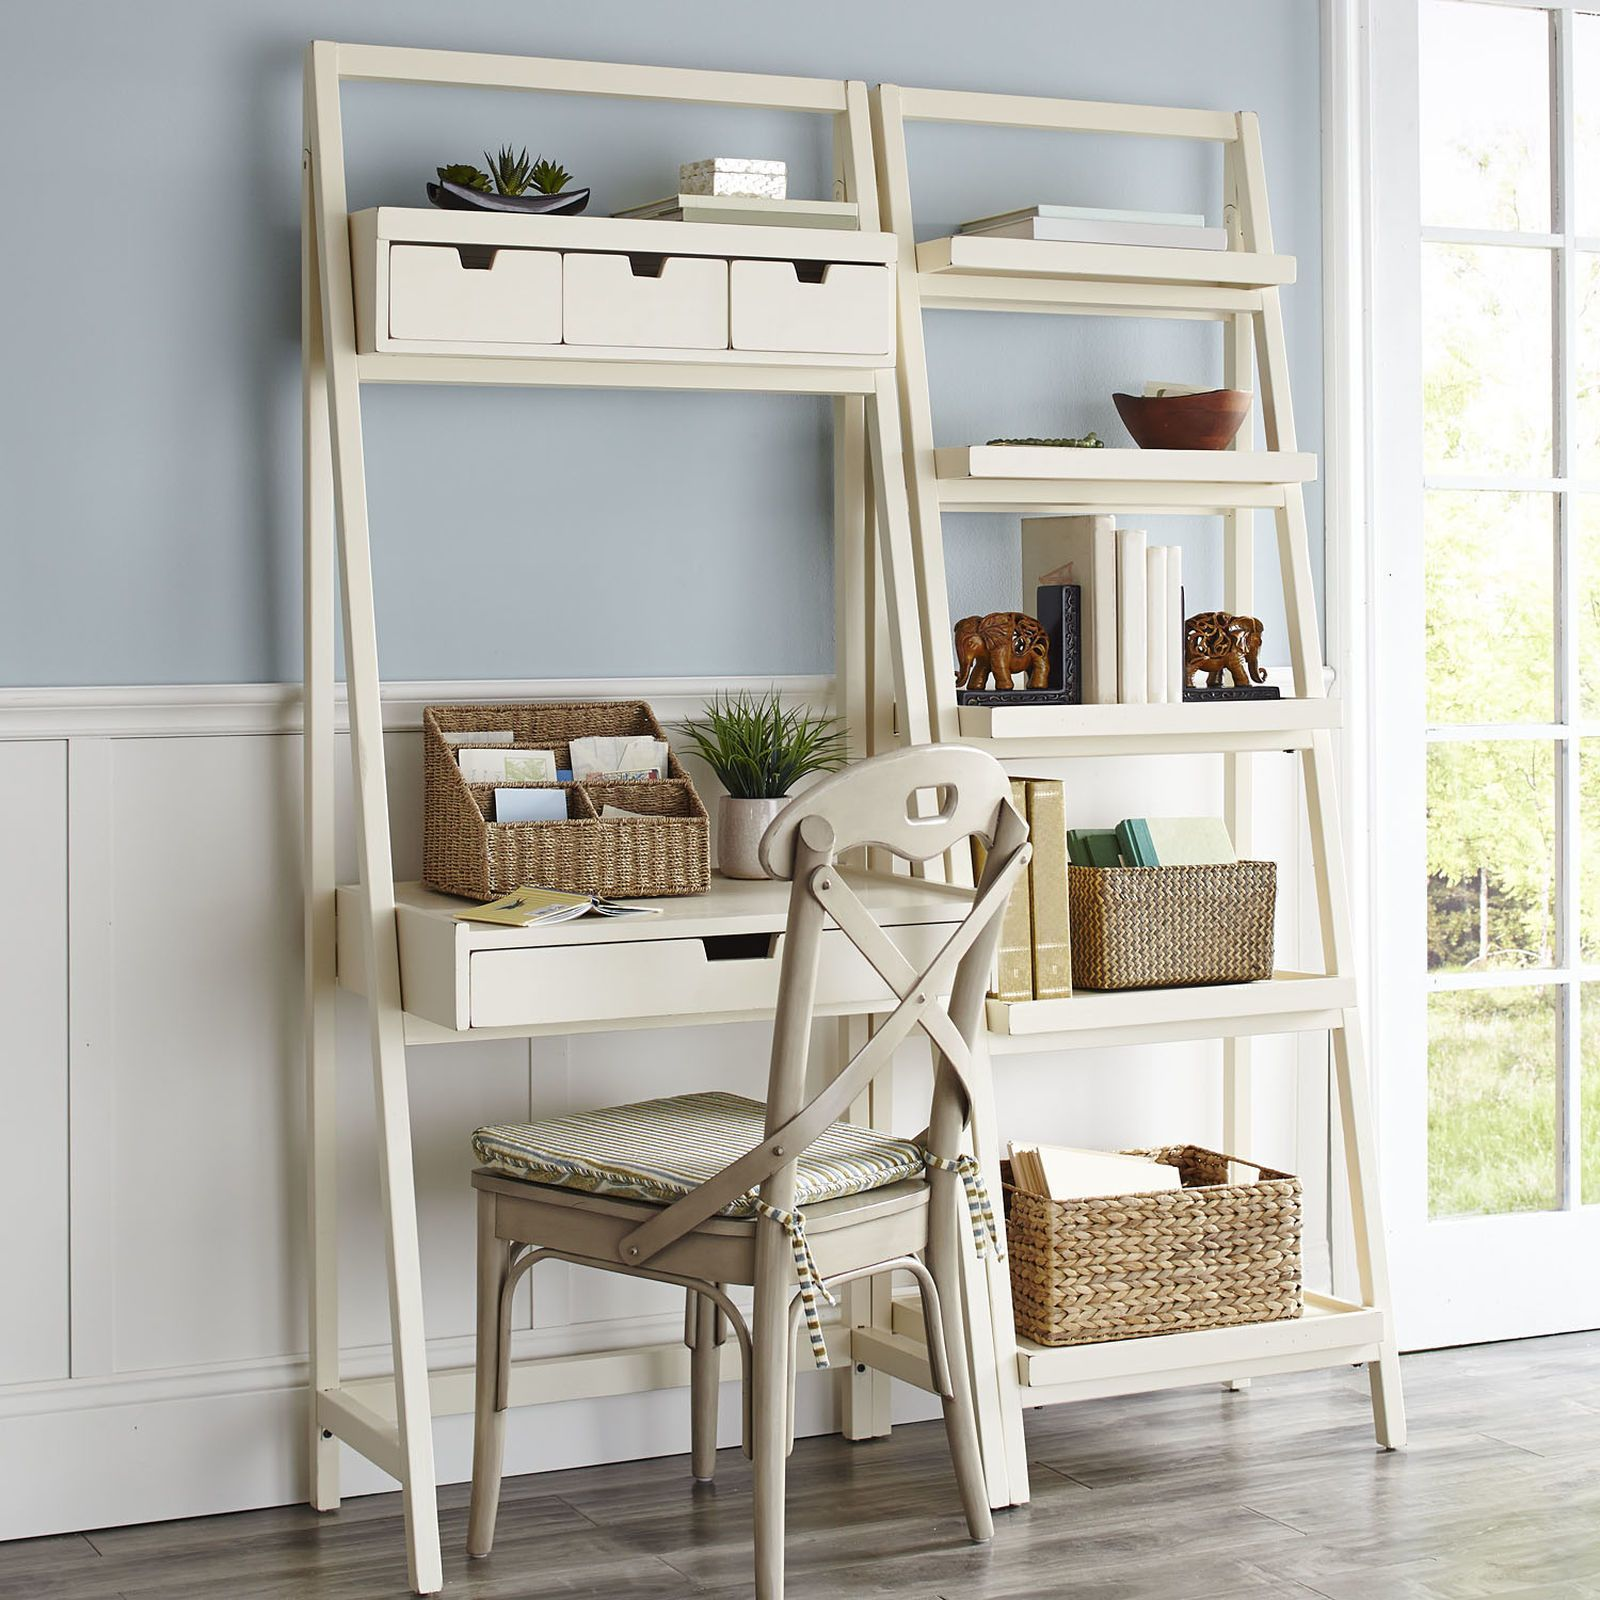 Merveilleux Morgan Desk In Antique White | Pier 1 U003c3